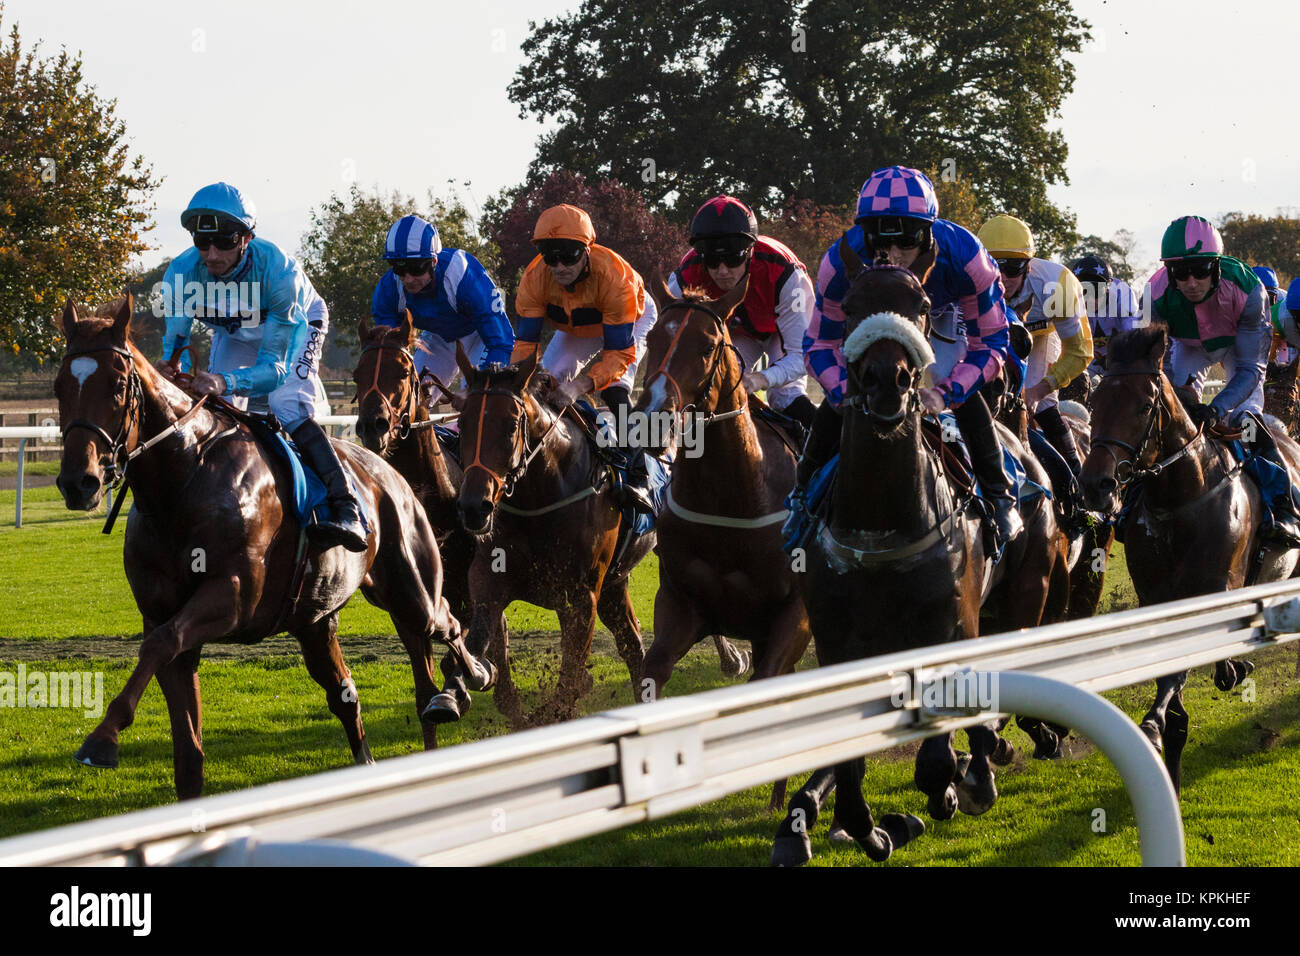 Horses Galloping From The Start At York Races End Of 2017 Season